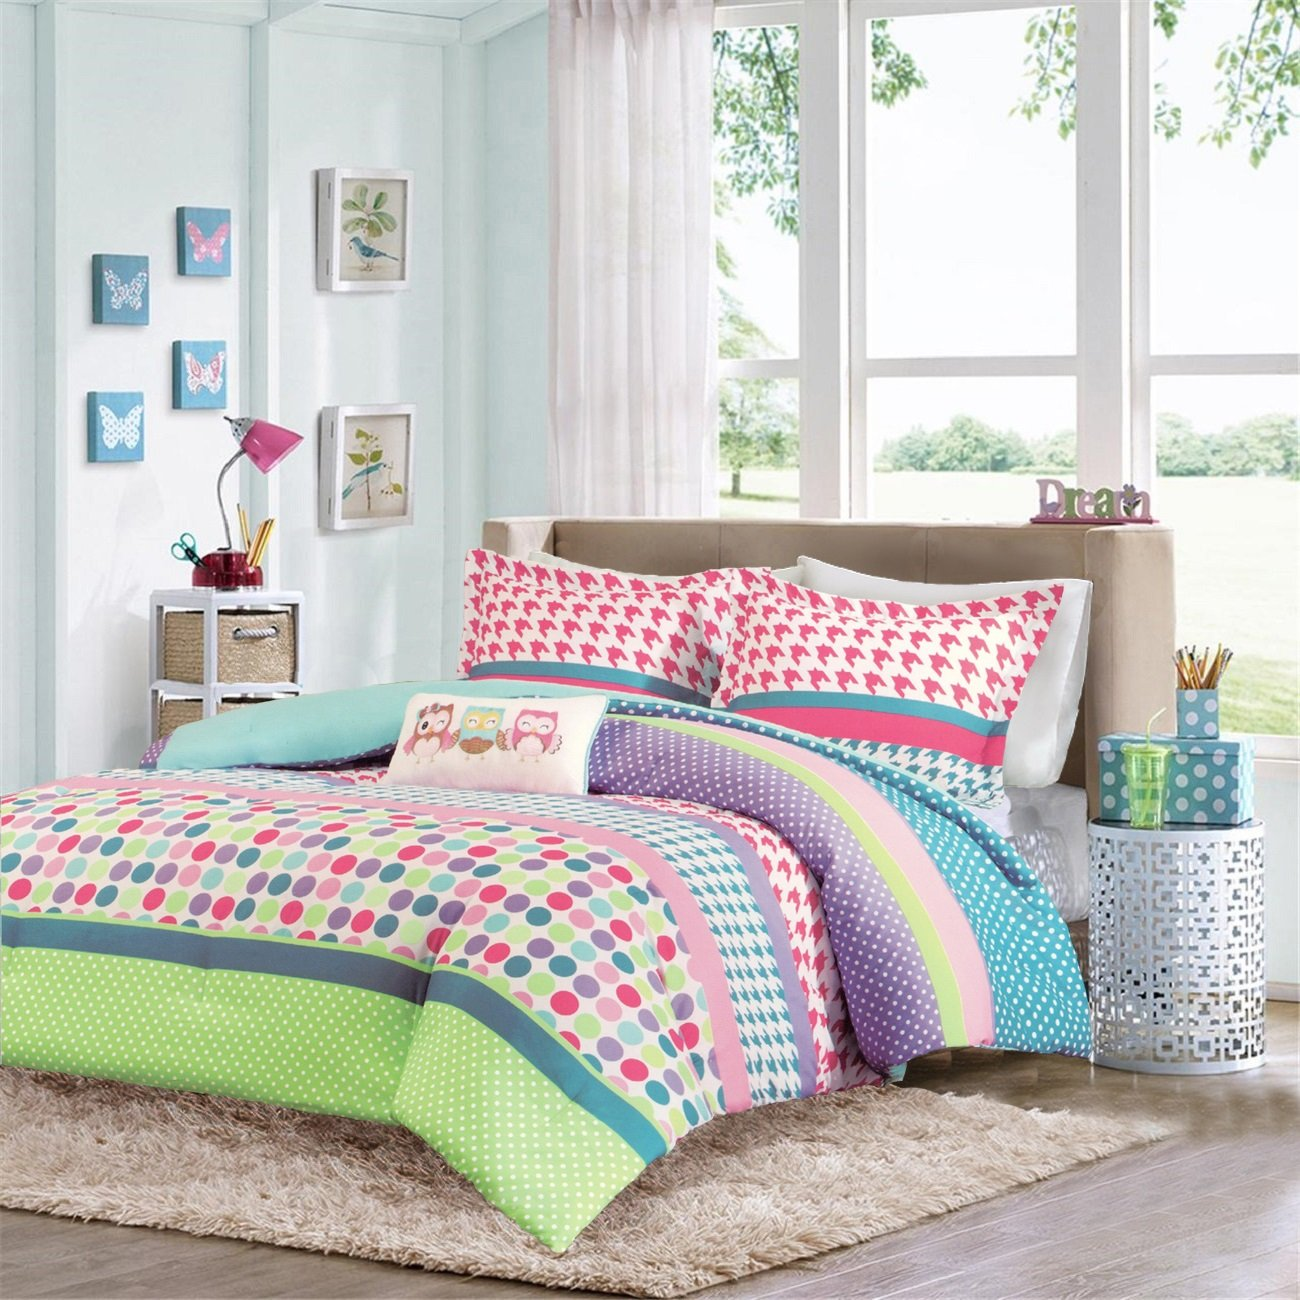 Girls Teen Kids Modern Comforter Bedding Set Pink Purple Aqua Blue Polka Dots Stripes Geometric Design with Owl Pillow